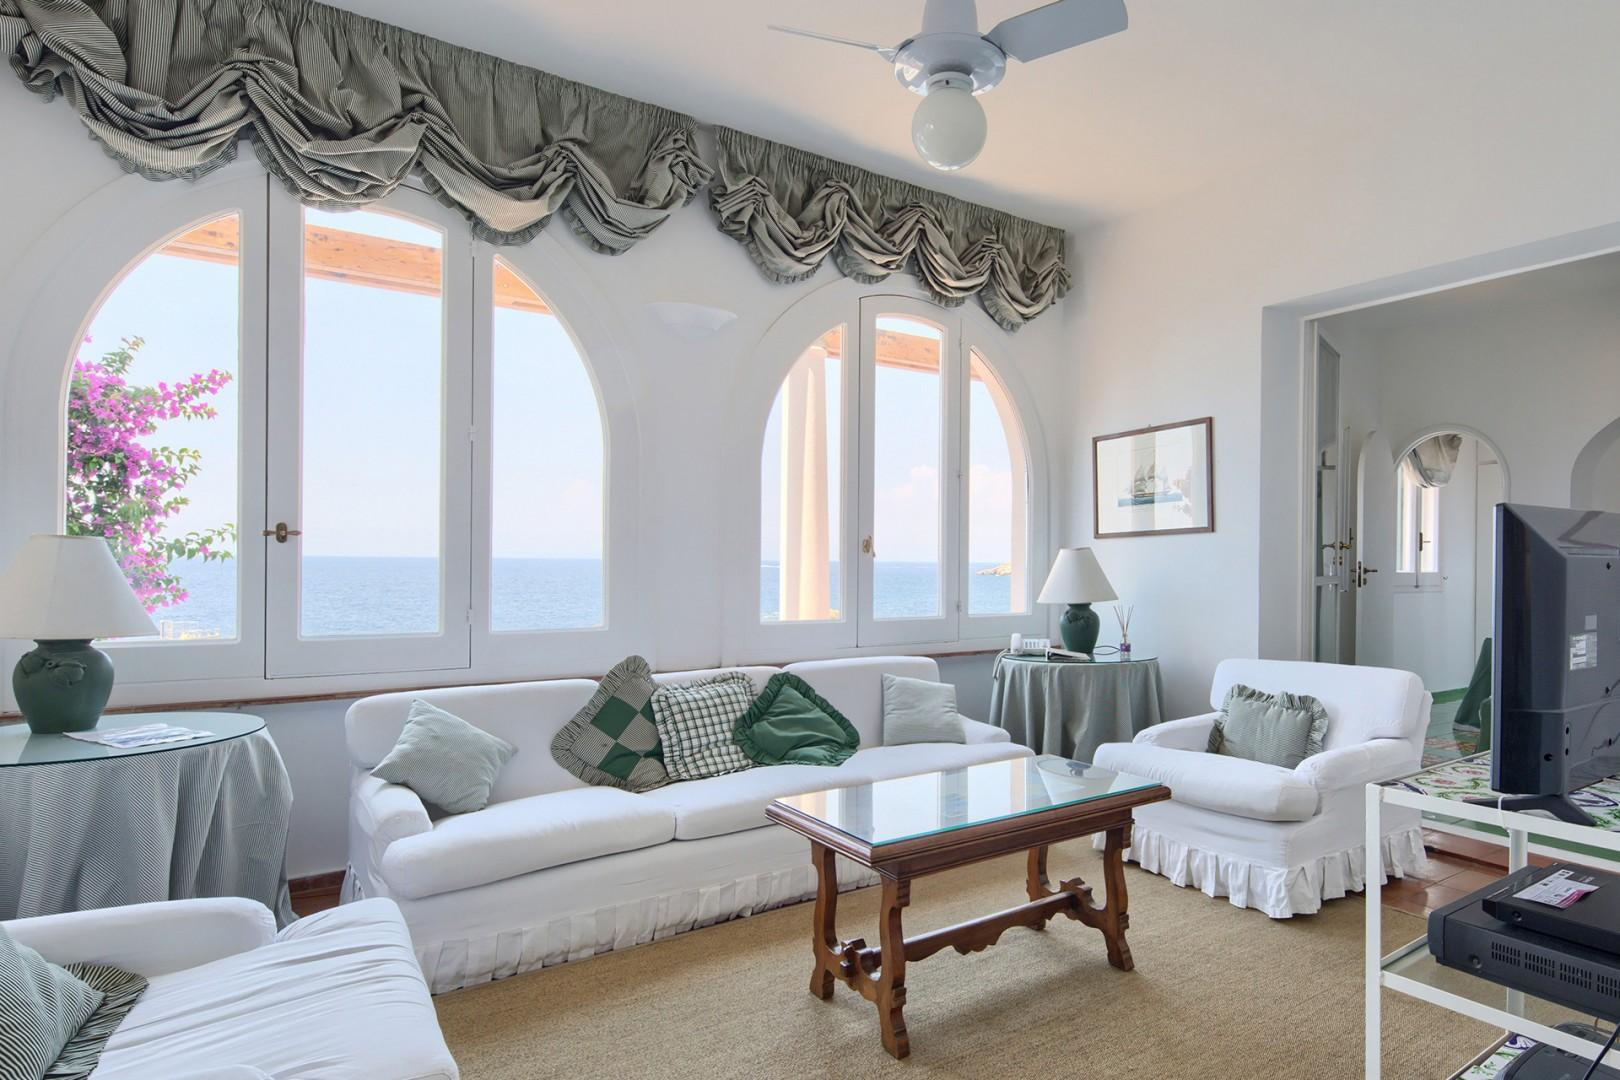 Comfortable cottage-style sofa and chairs in the living room with breathtaking views.